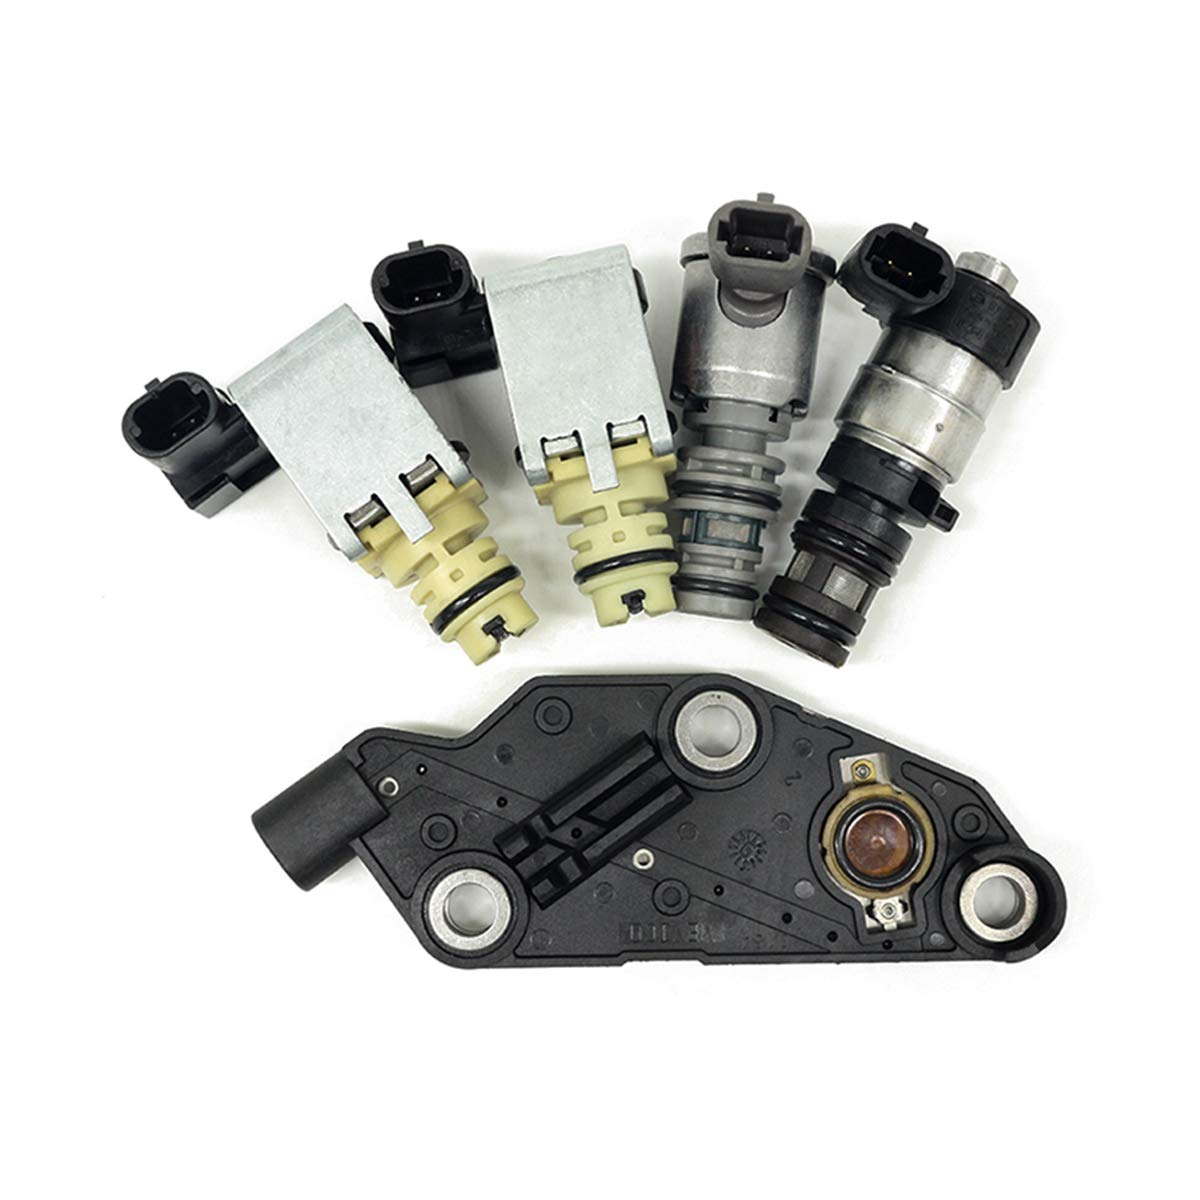 4T65E Transmission Master Solenoid Kit Set Replacement for EPC Shift TCC GM 1997-2002 99149 TCC /& PWM Downshift Solenoid Manifold Pressure Switch Compatible With GM /& Buick /& Chevrolet /& Pontiac 2003